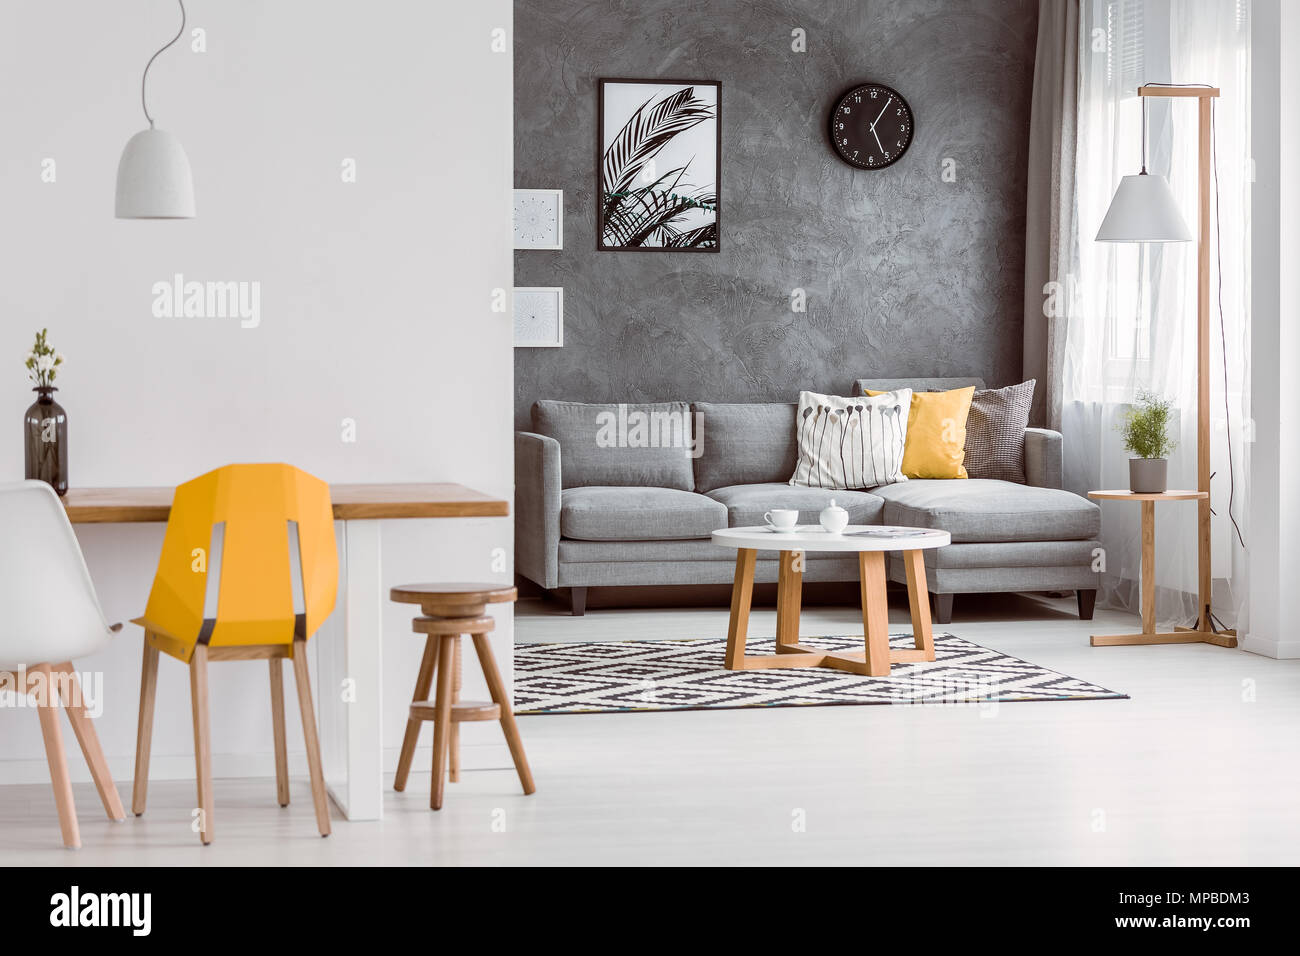 Miraculous Yellow Chair At Wooden Table In Modern Living Room With Pabps2019 Chair Design Images Pabps2019Com